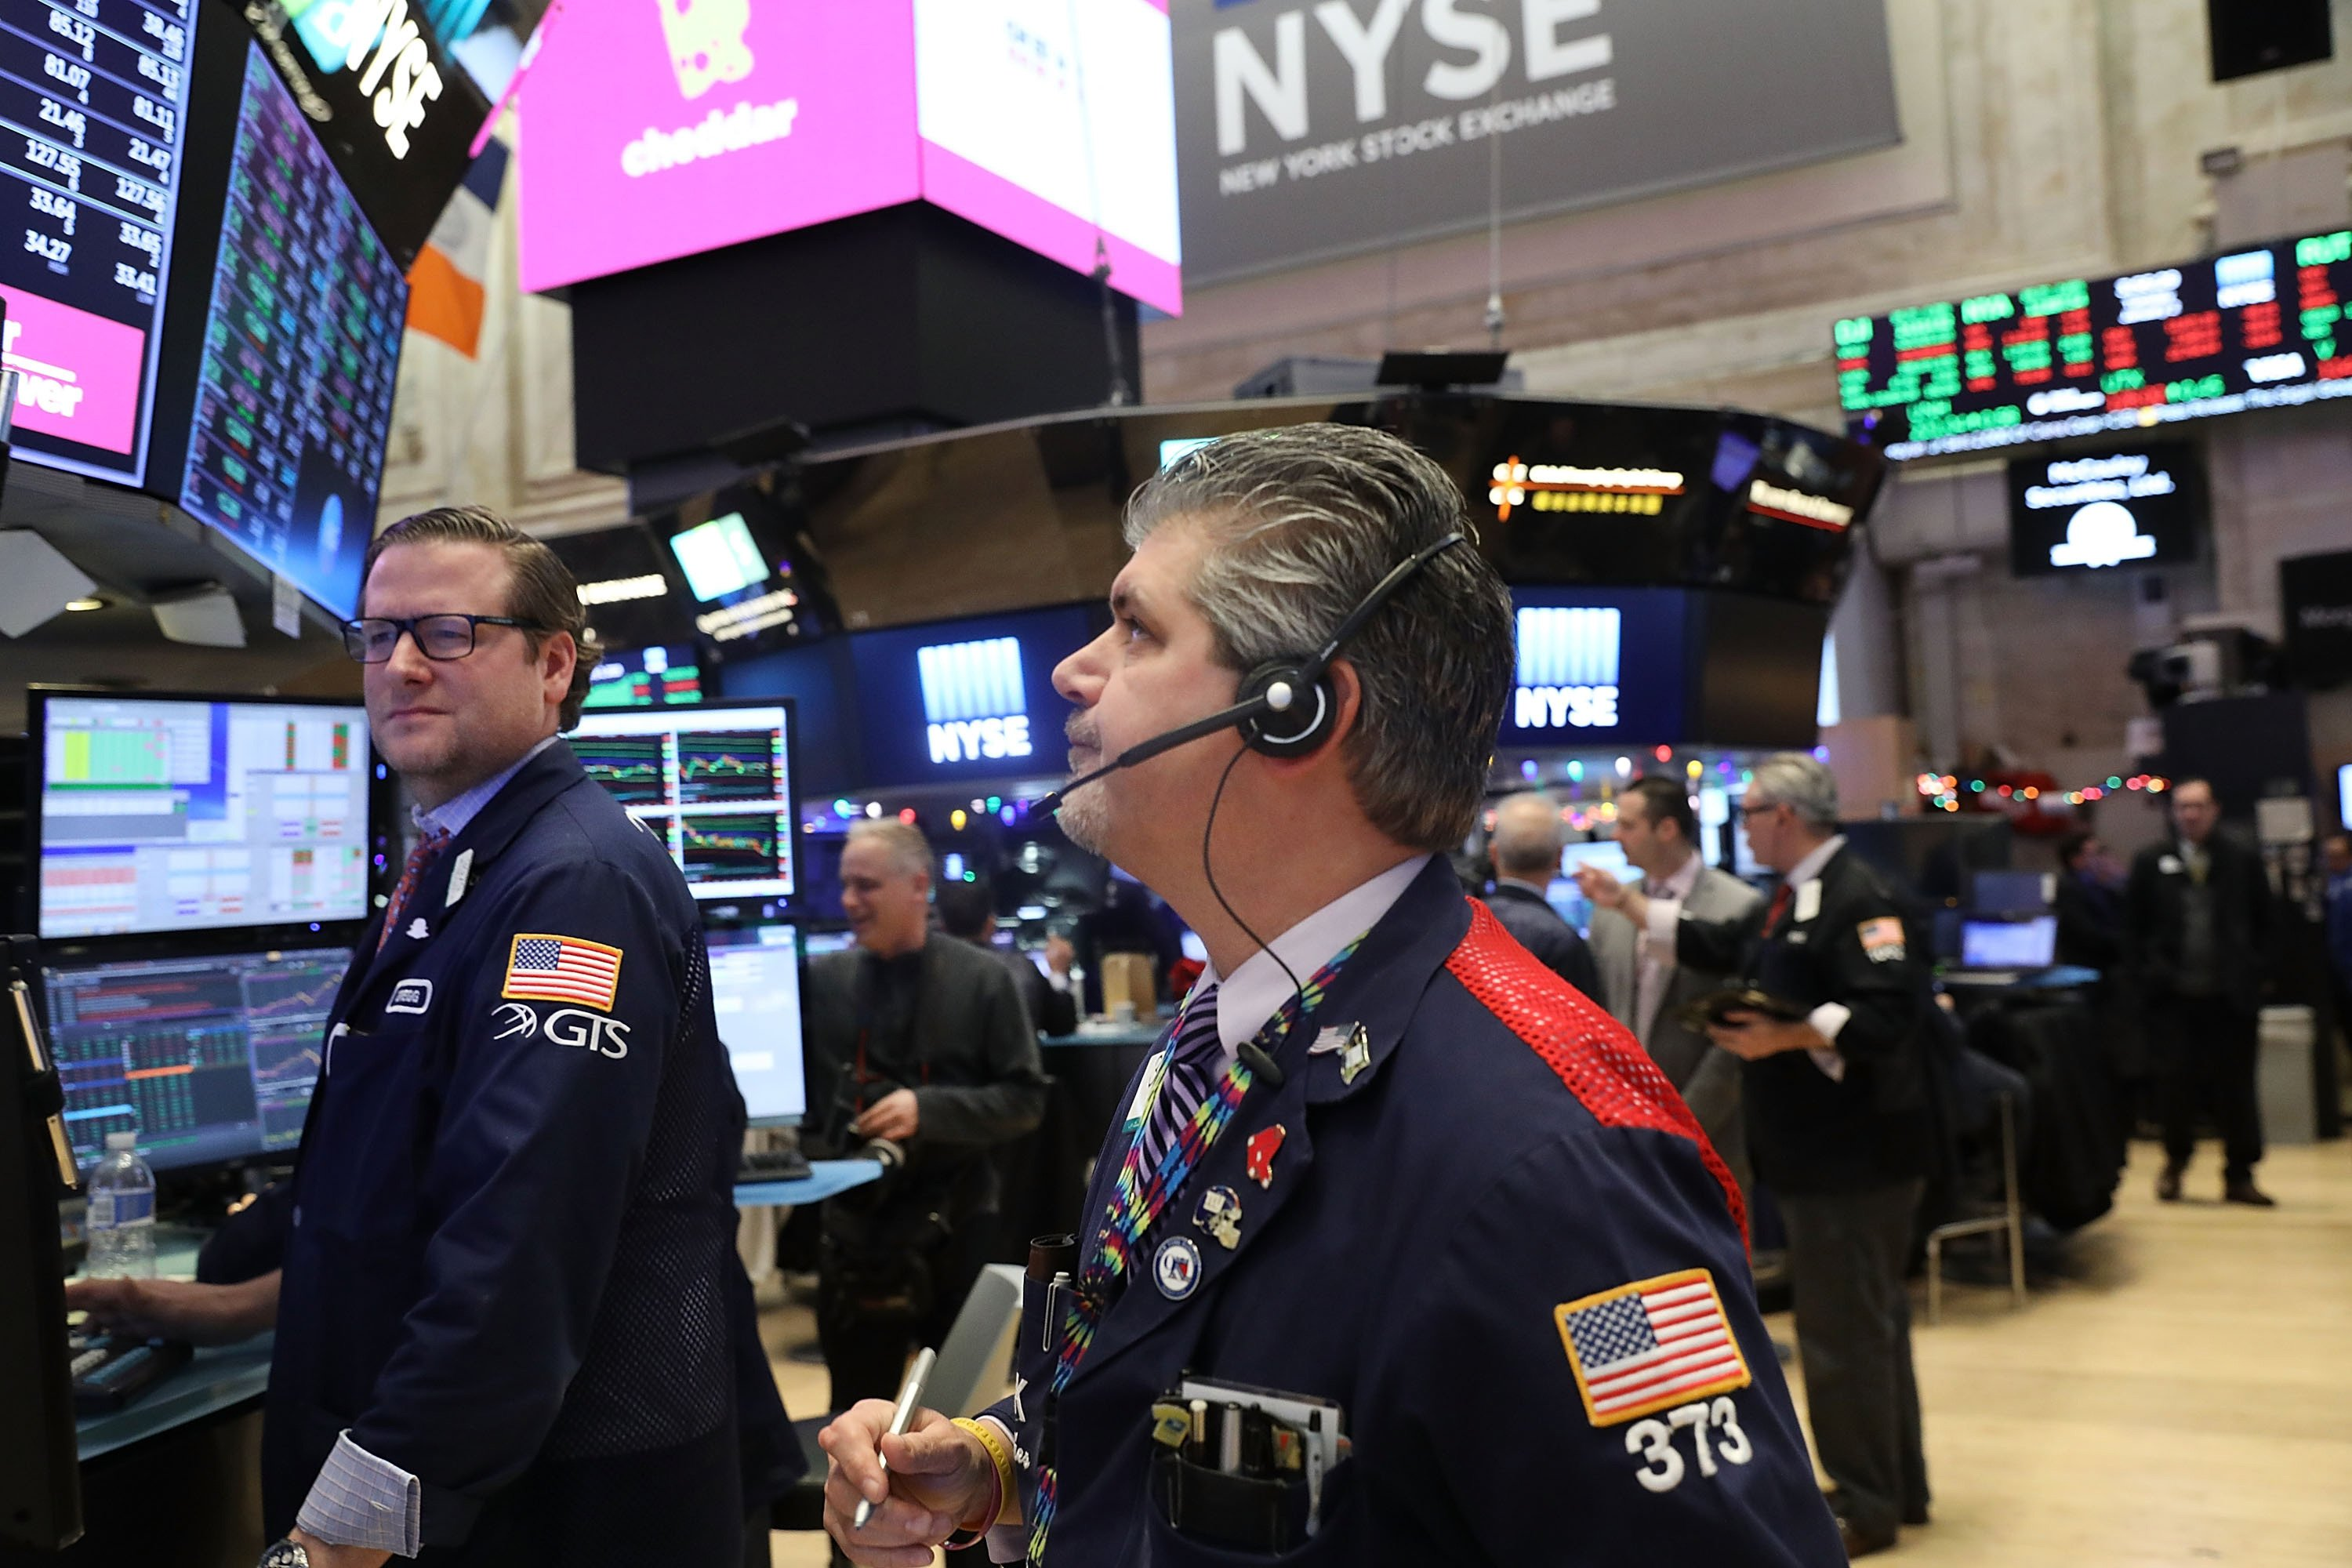 Stocks open lower for first time in 2018